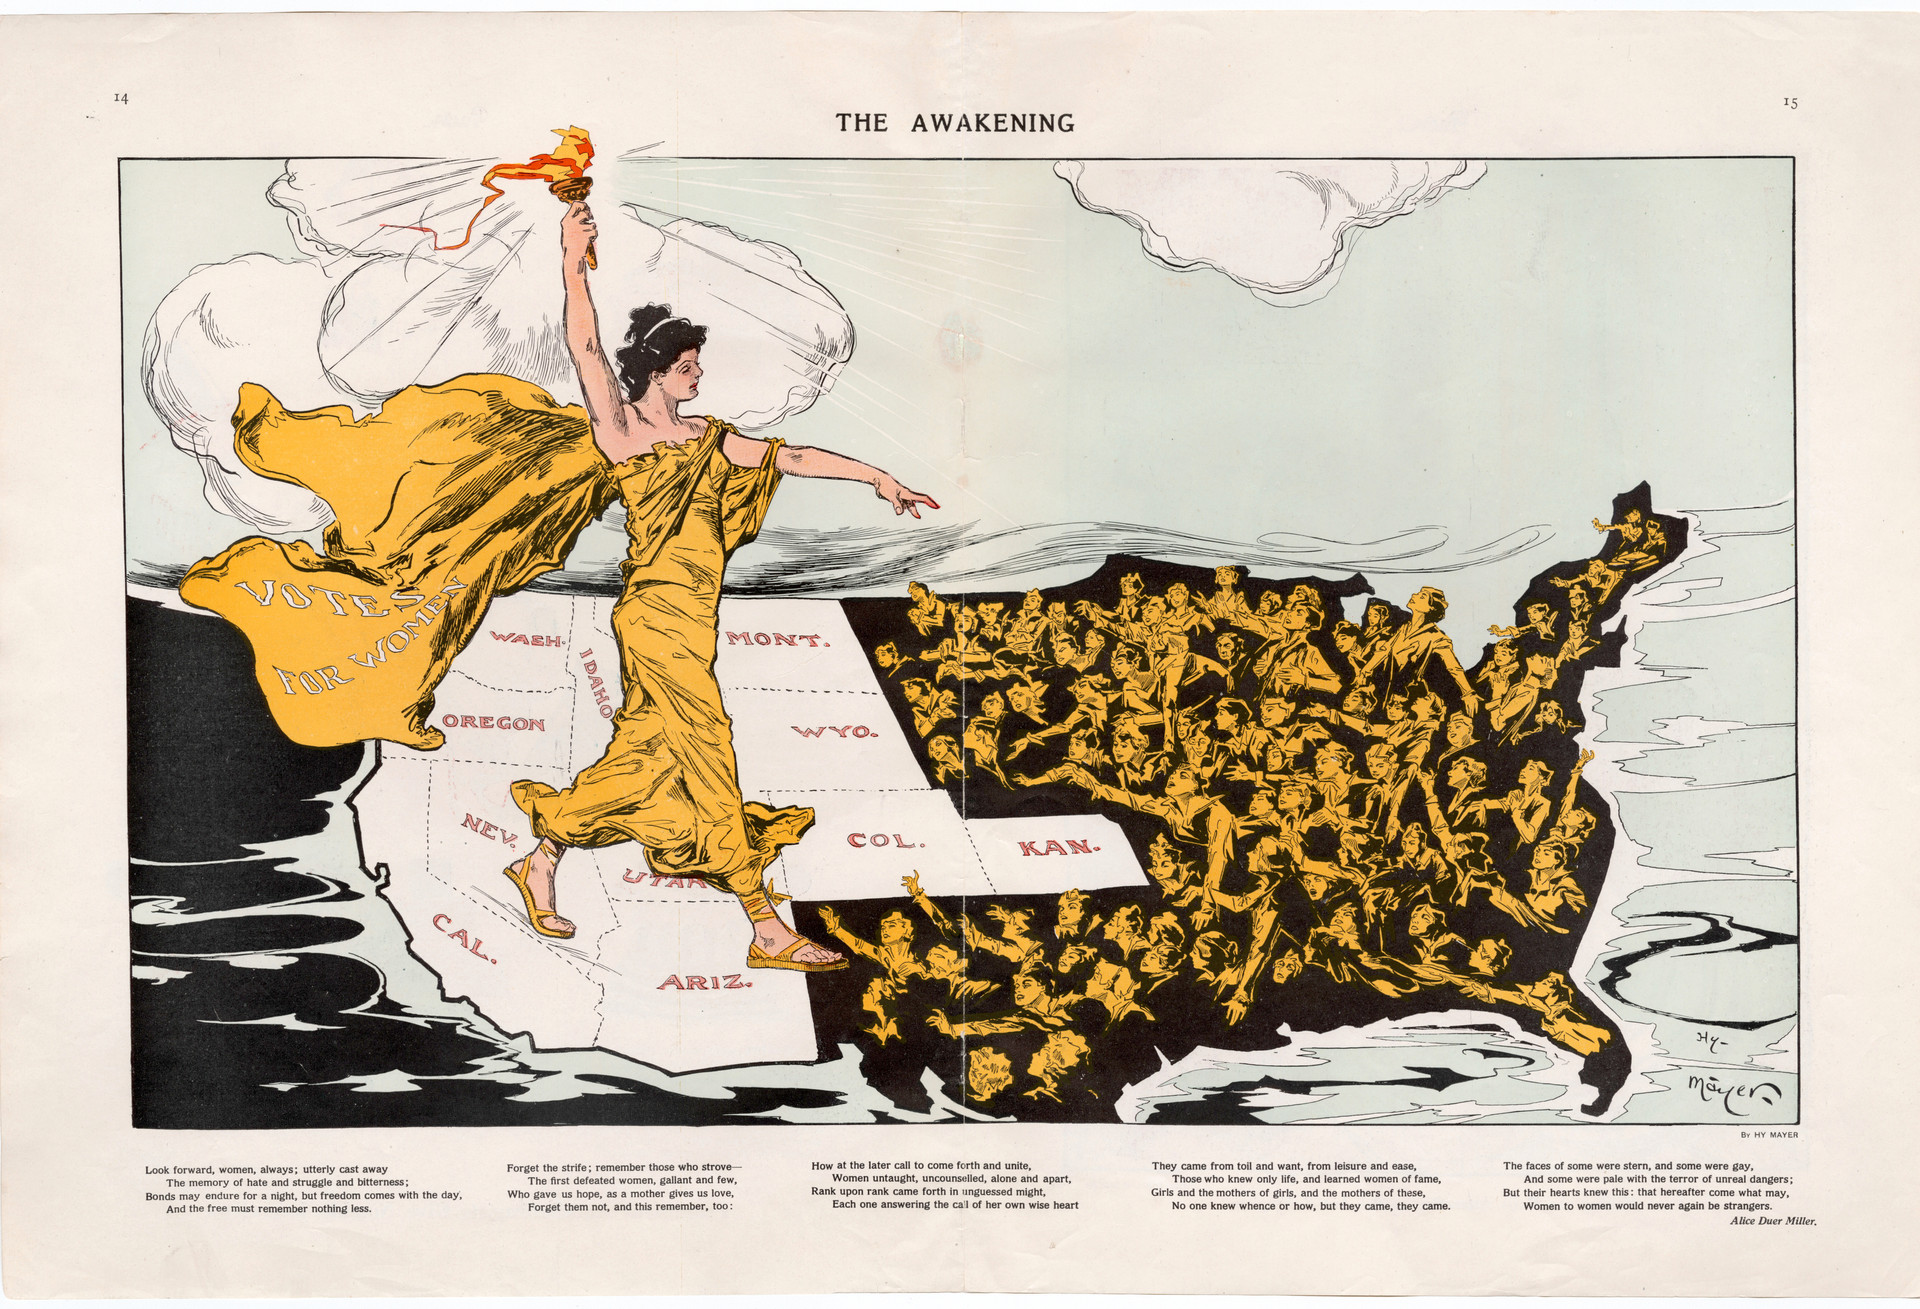 """""""The Awakening,"""" Hy Mayer, published in Puck February 20, 1915"""